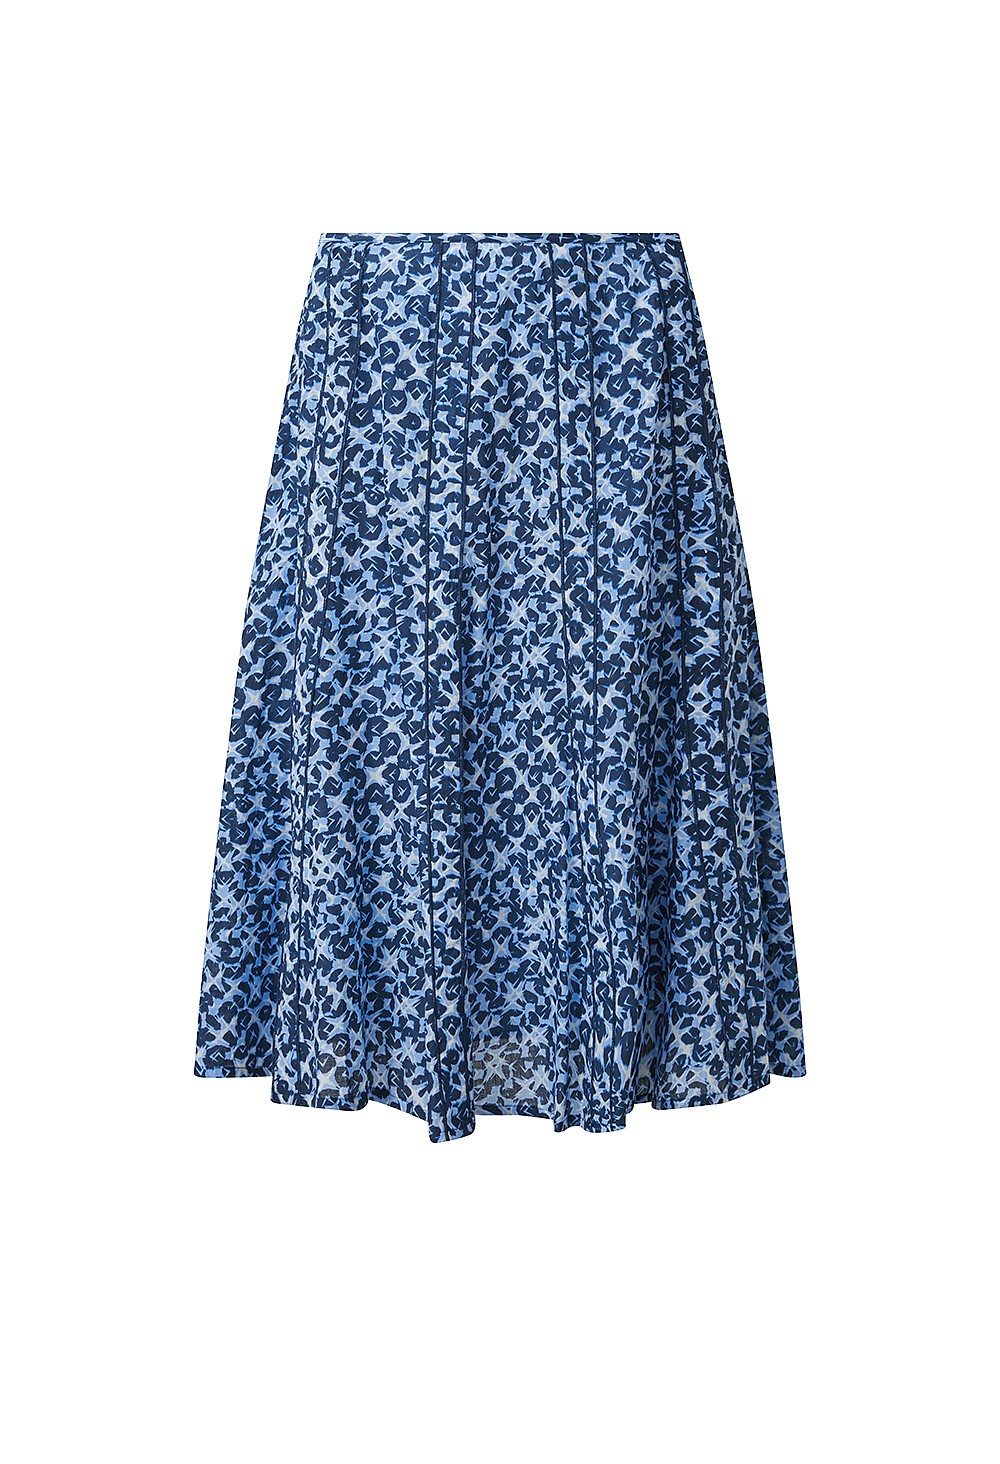 Adini Peggy skirt